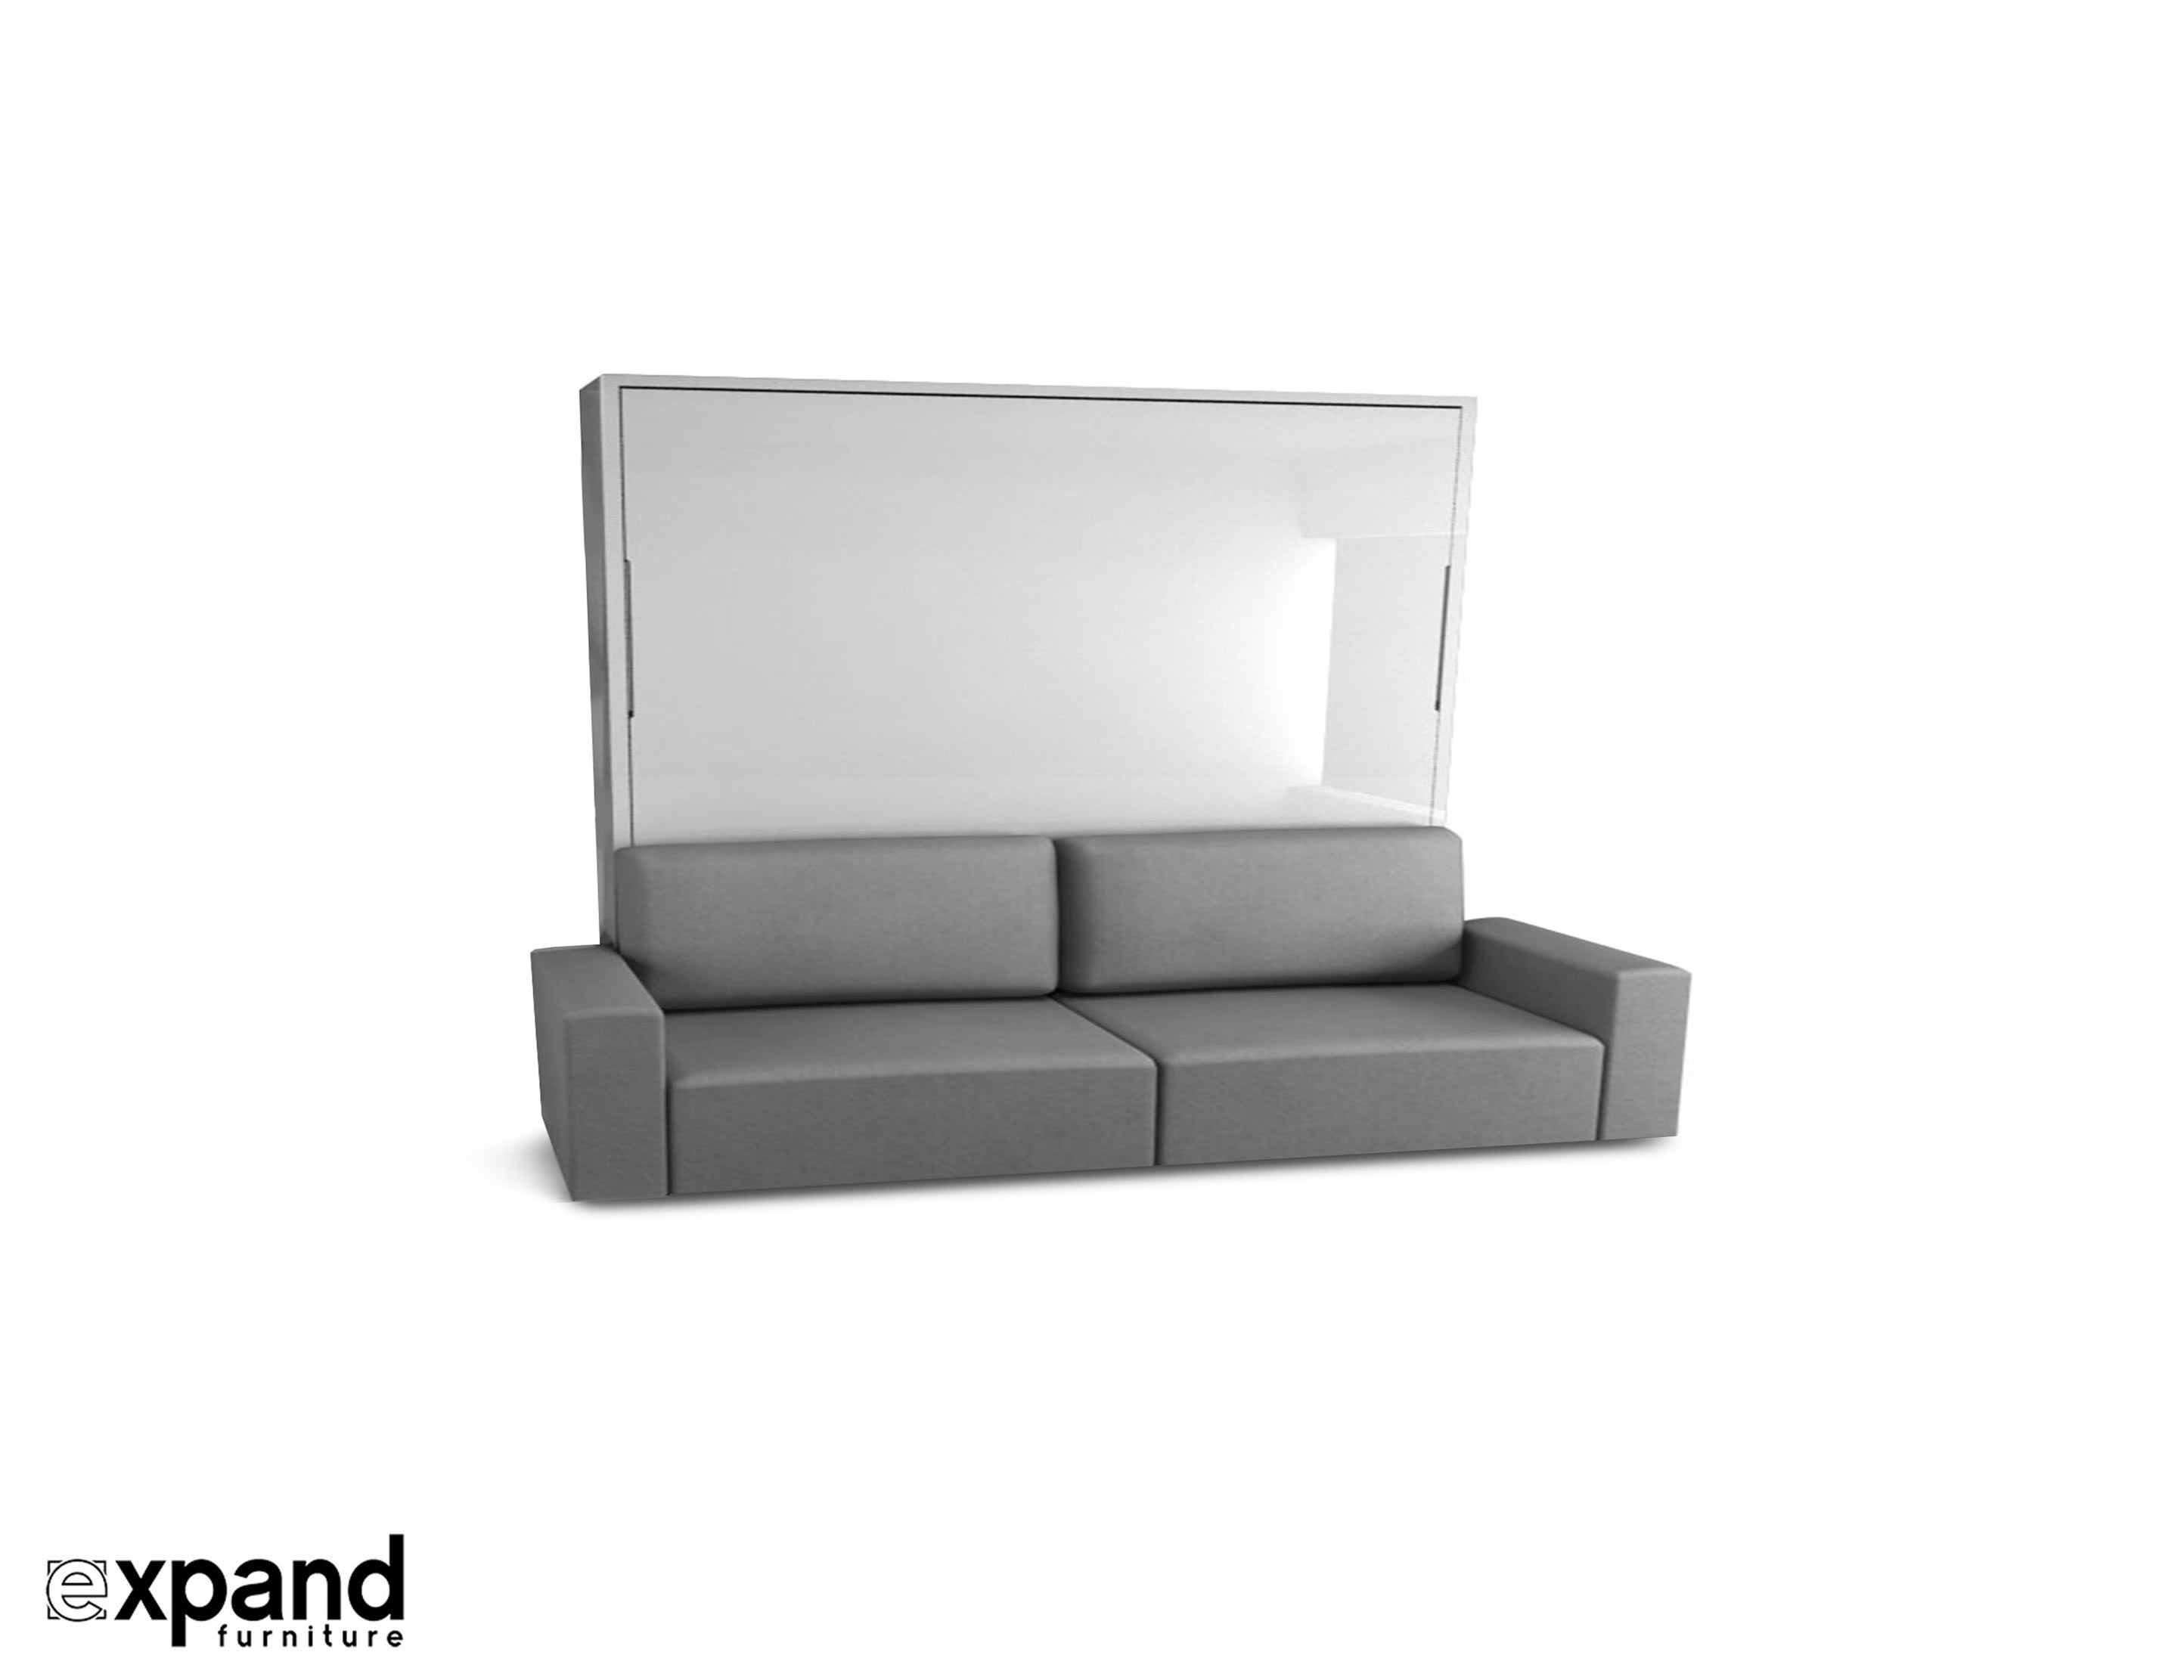 wall bed with sofa canada com bluebell review murphysofa clean horizontal queen expand furniture